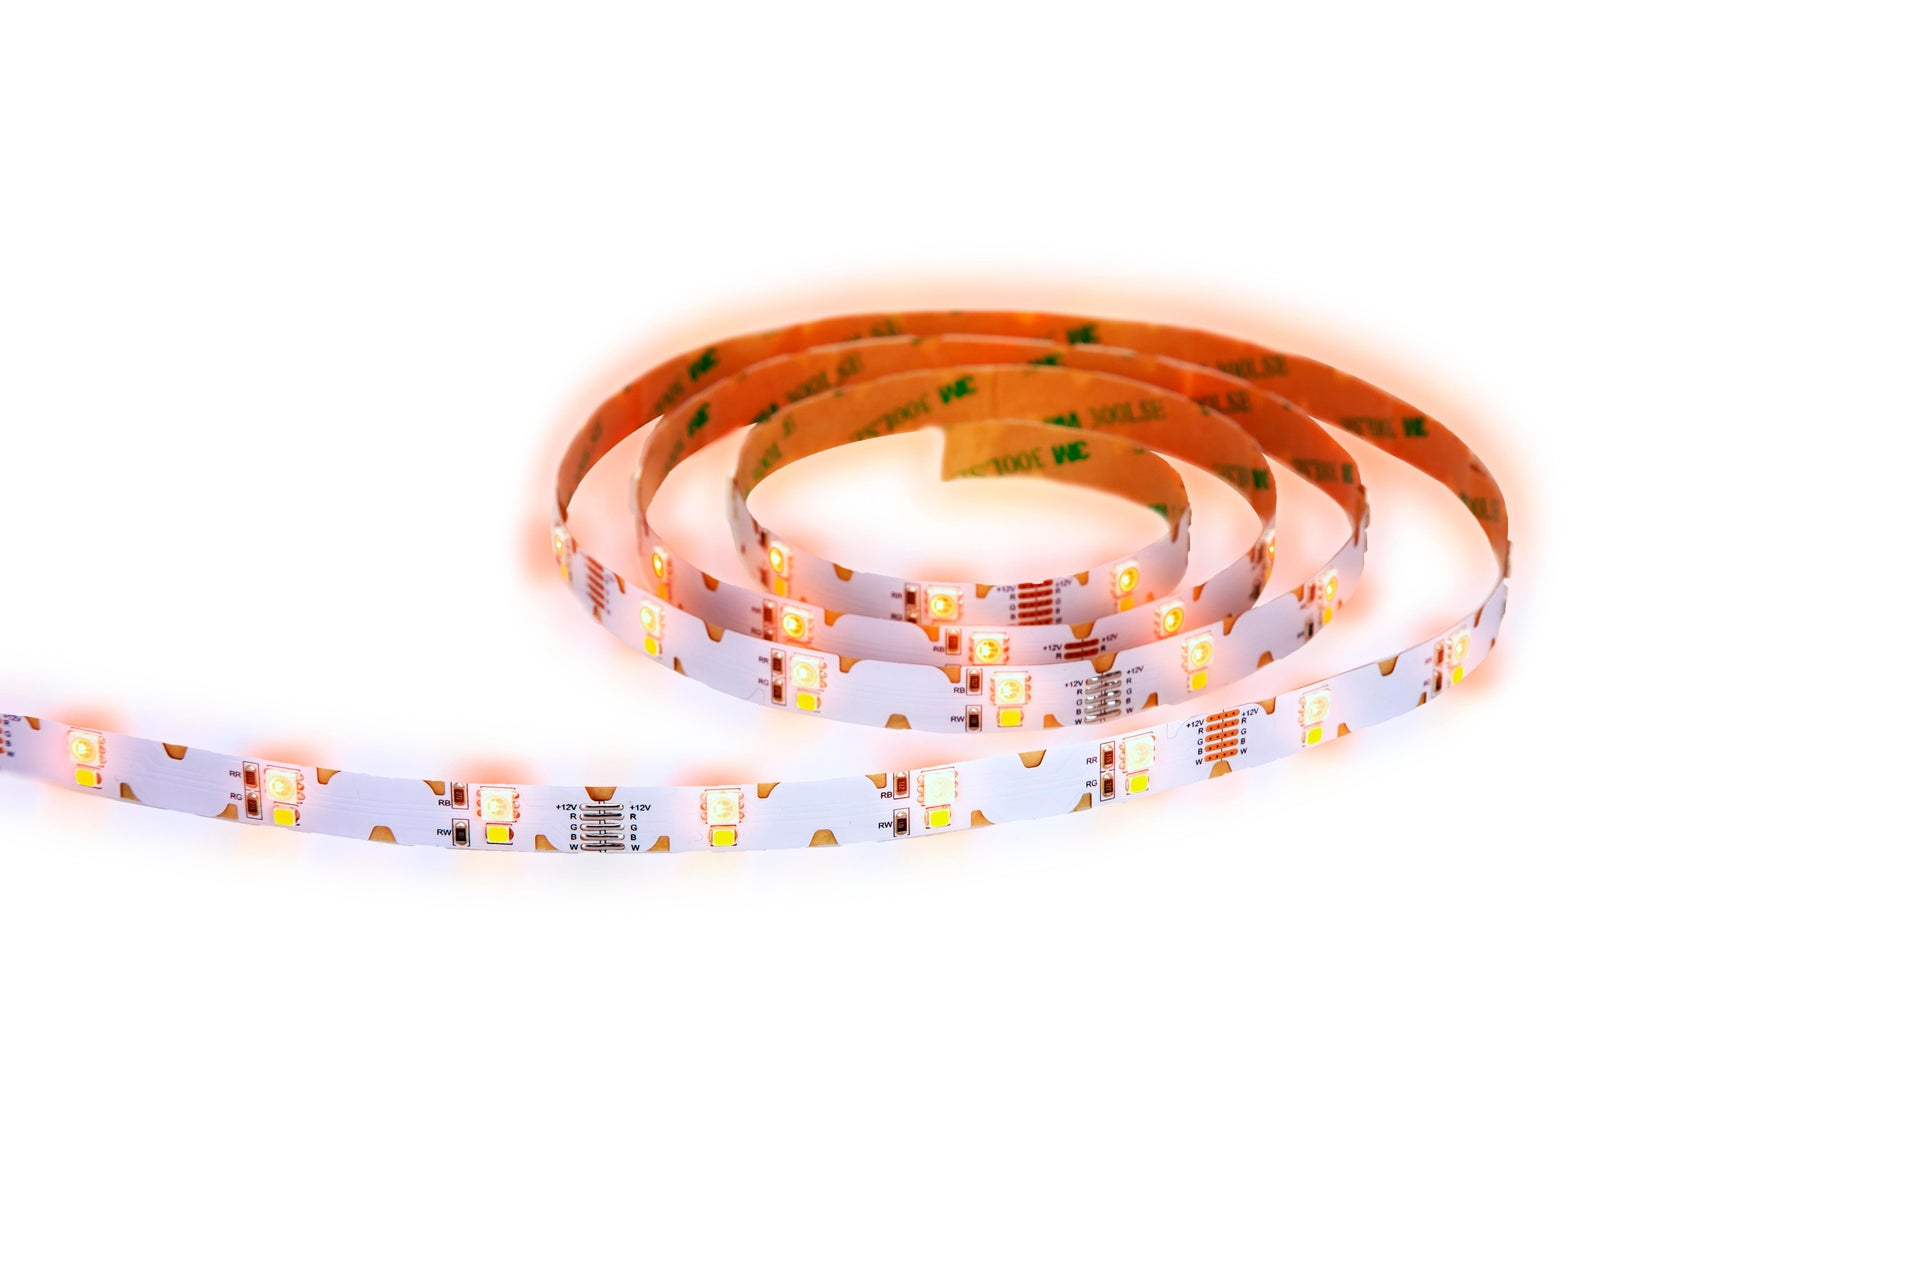 Striscia led Movaled 5m luce colore cangiante<multisep/>bianco 240LM IP20 INSPIRE - 2